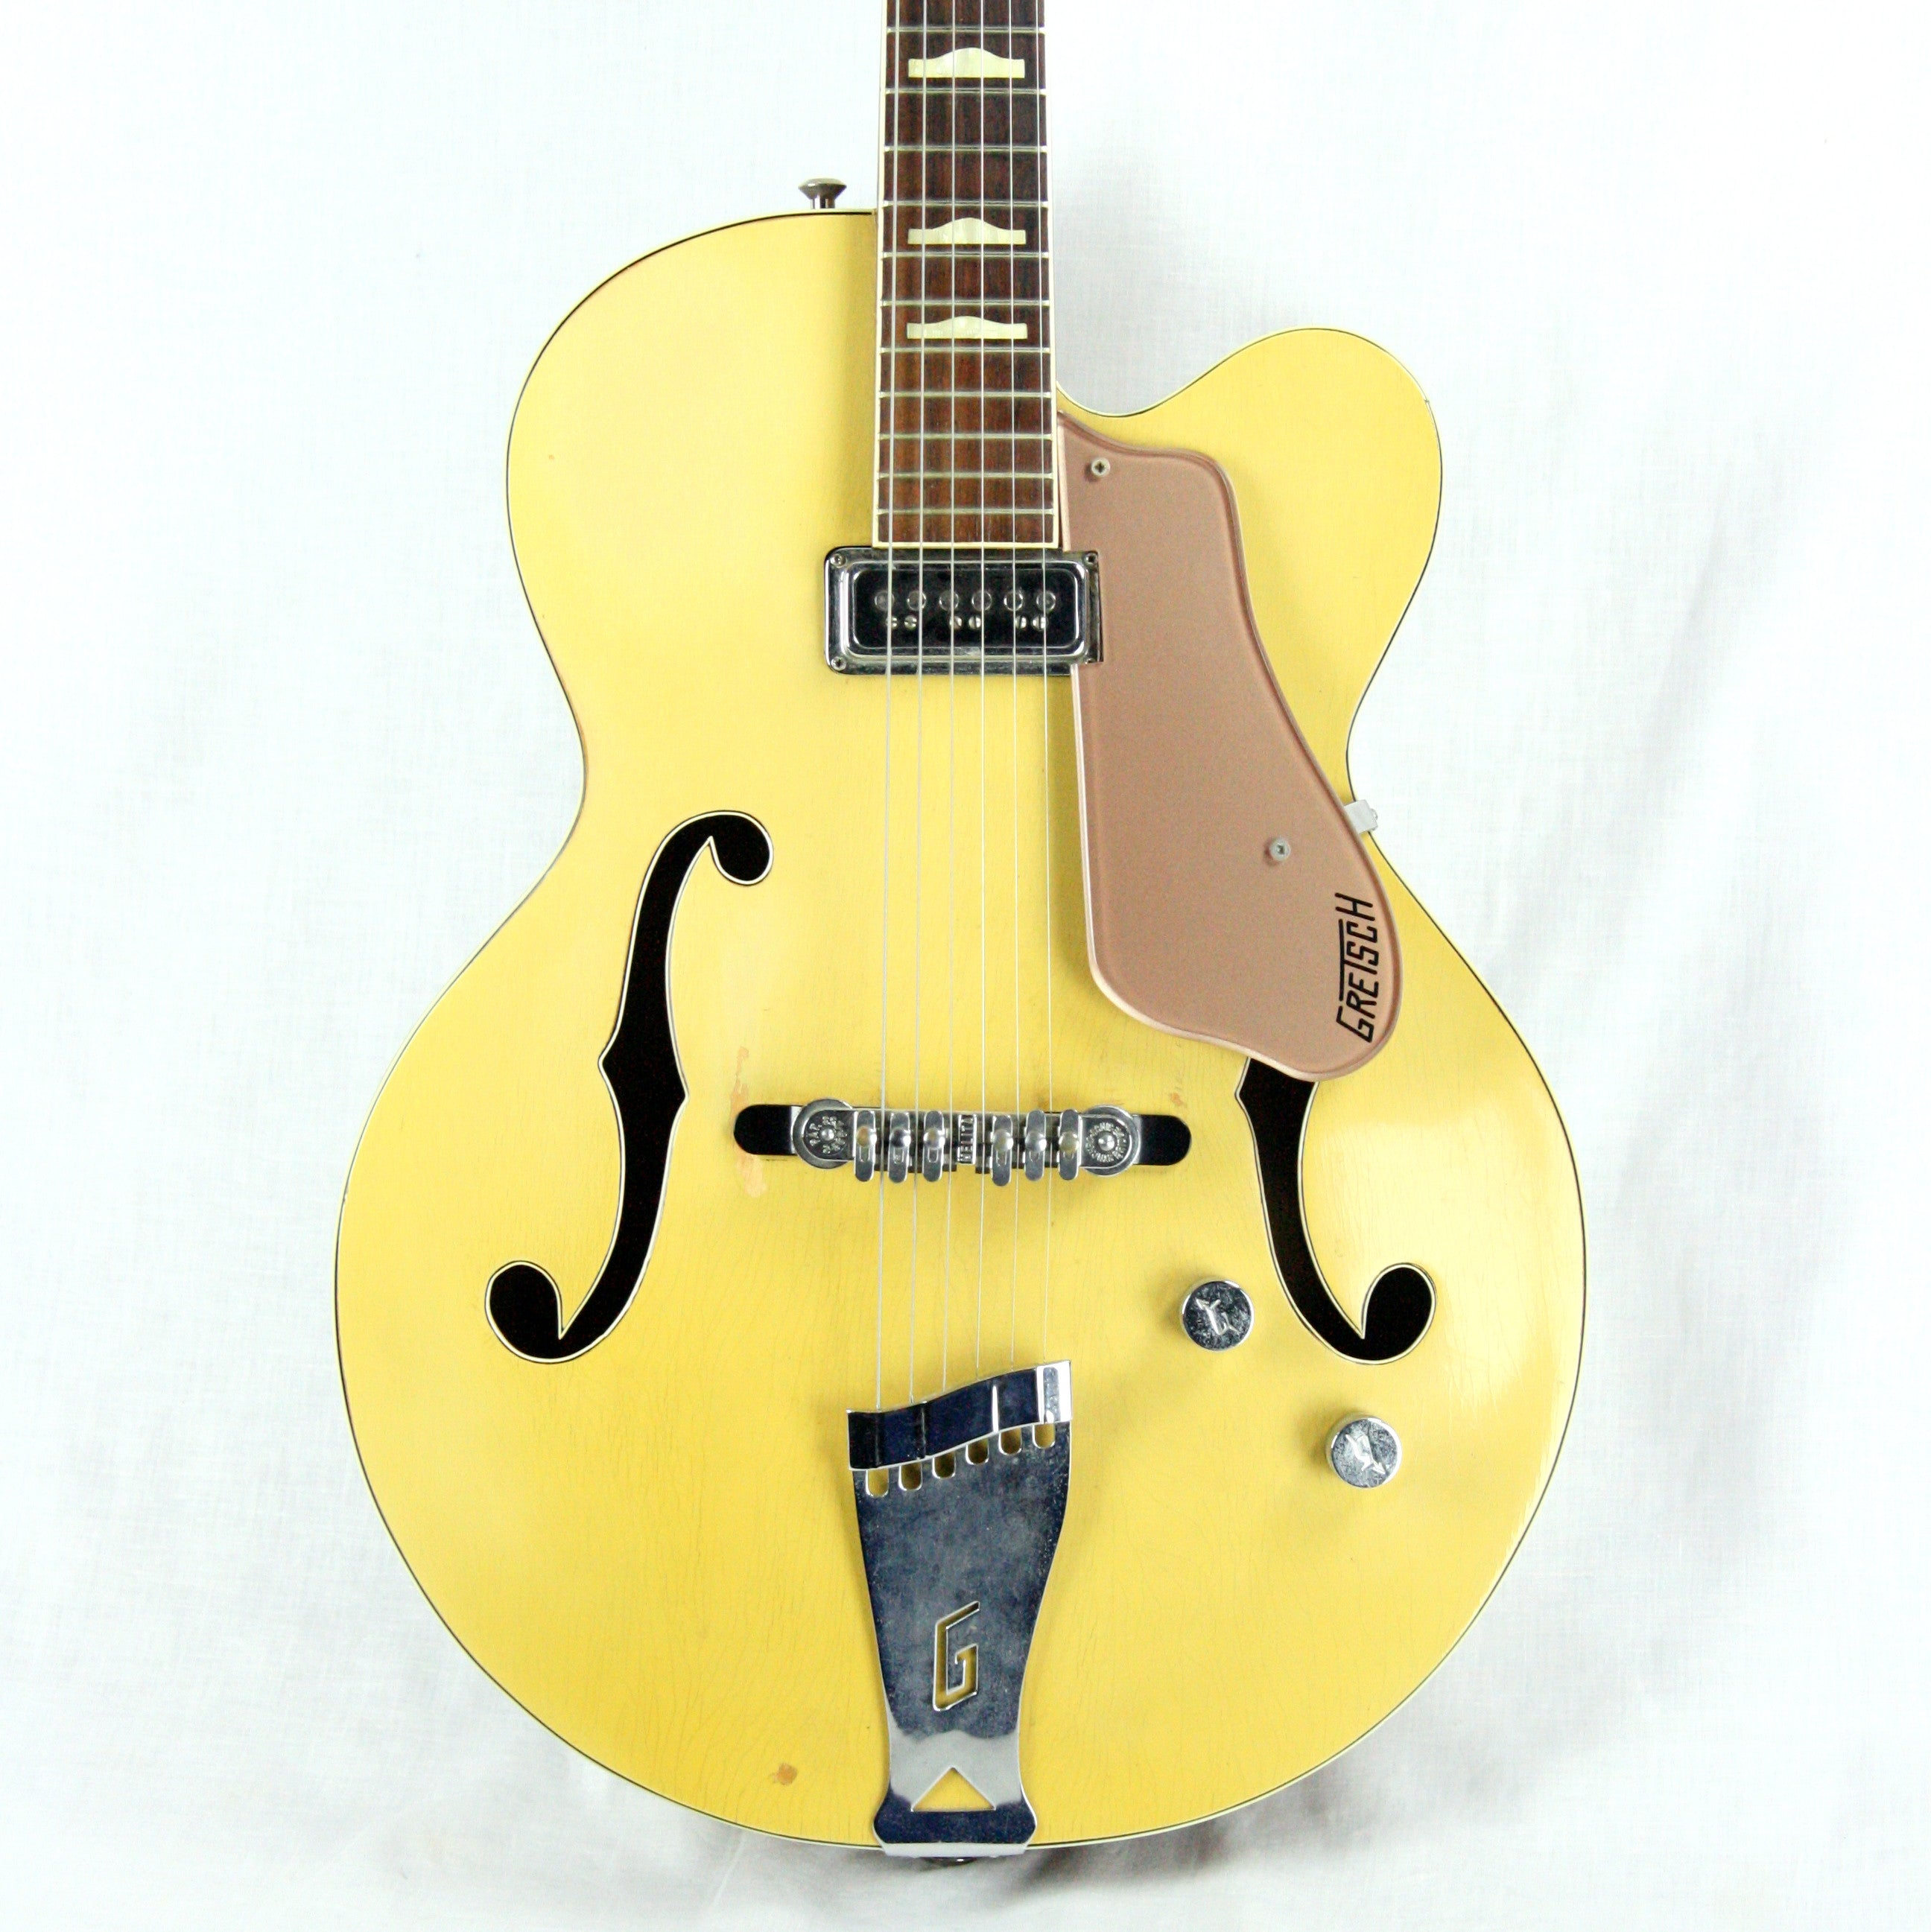 c. 1957 Gretsch Streamliner Bamboo Yellow Copper Mist! Transitional Electromatic 6189 Model! Anniversary 6120